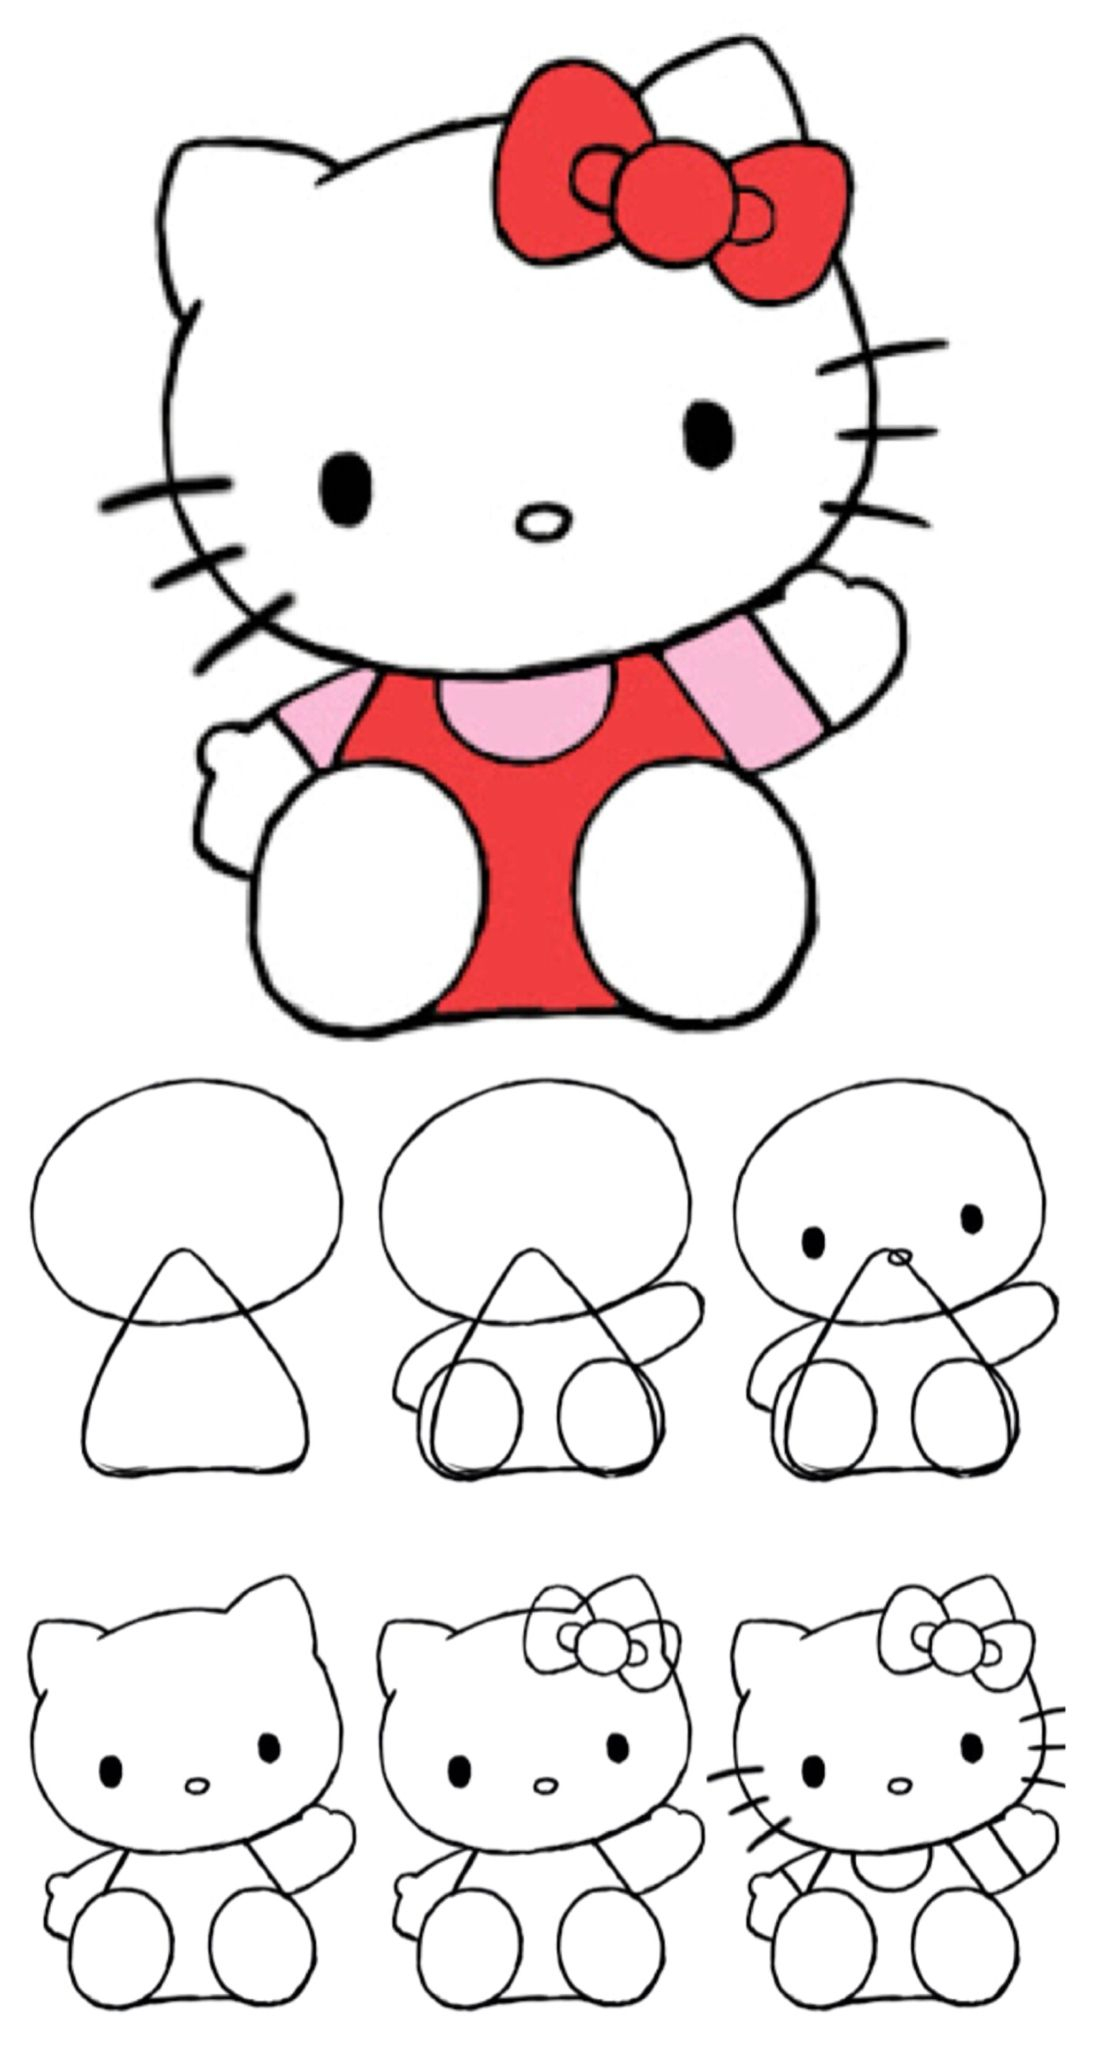 How To Draw Hello Kitty | Dessin, Dessin Hello Kitty Et à Hello Kitty À Dessiner